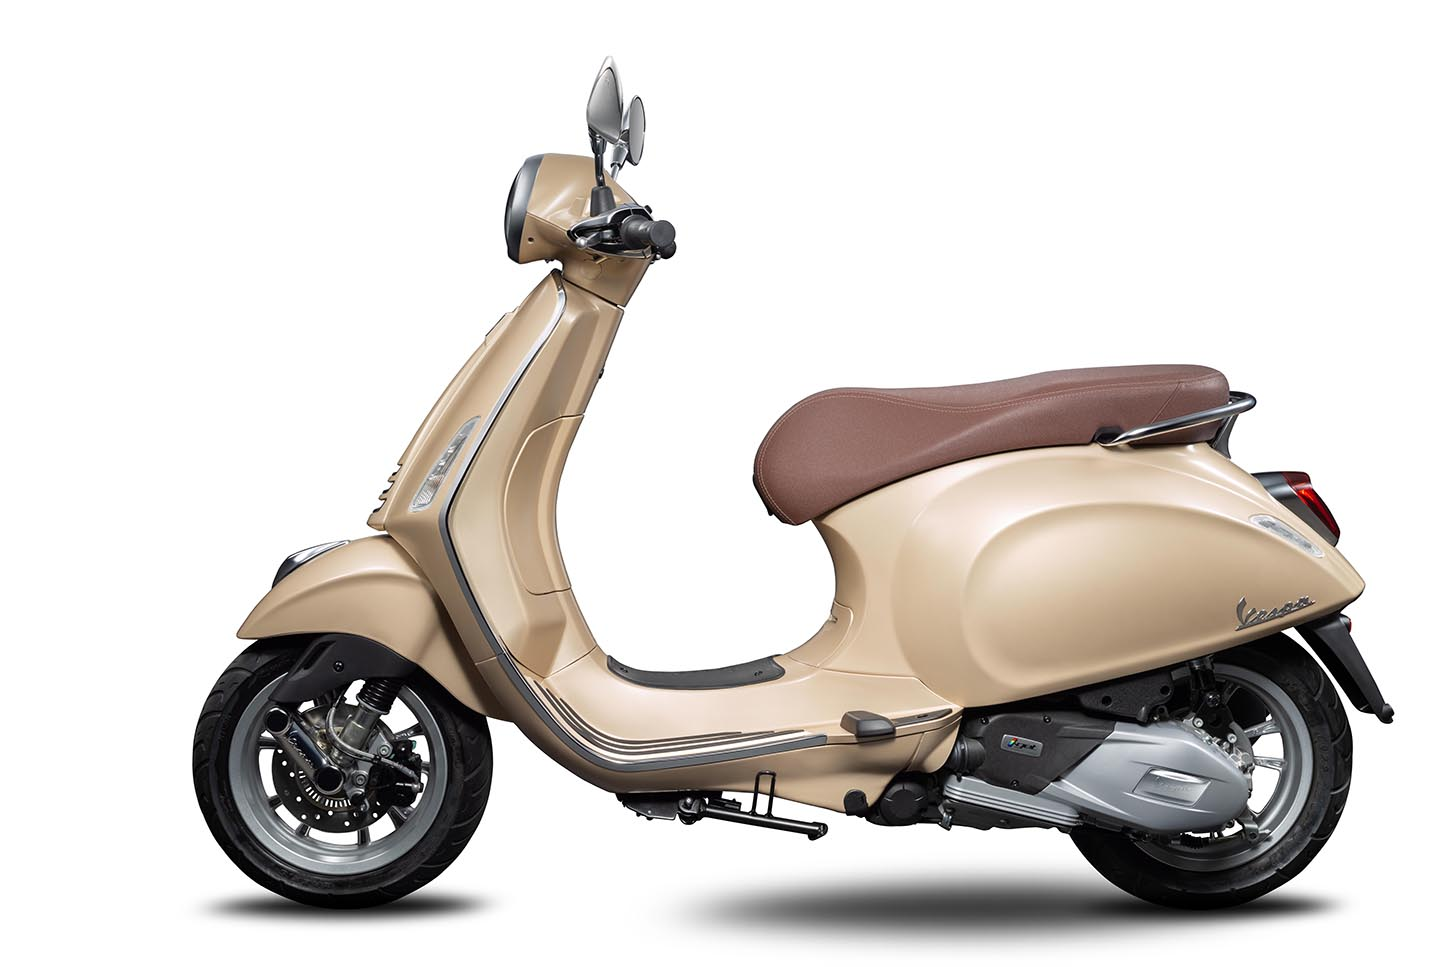 vespa-capture-one-catalog44585.jpg